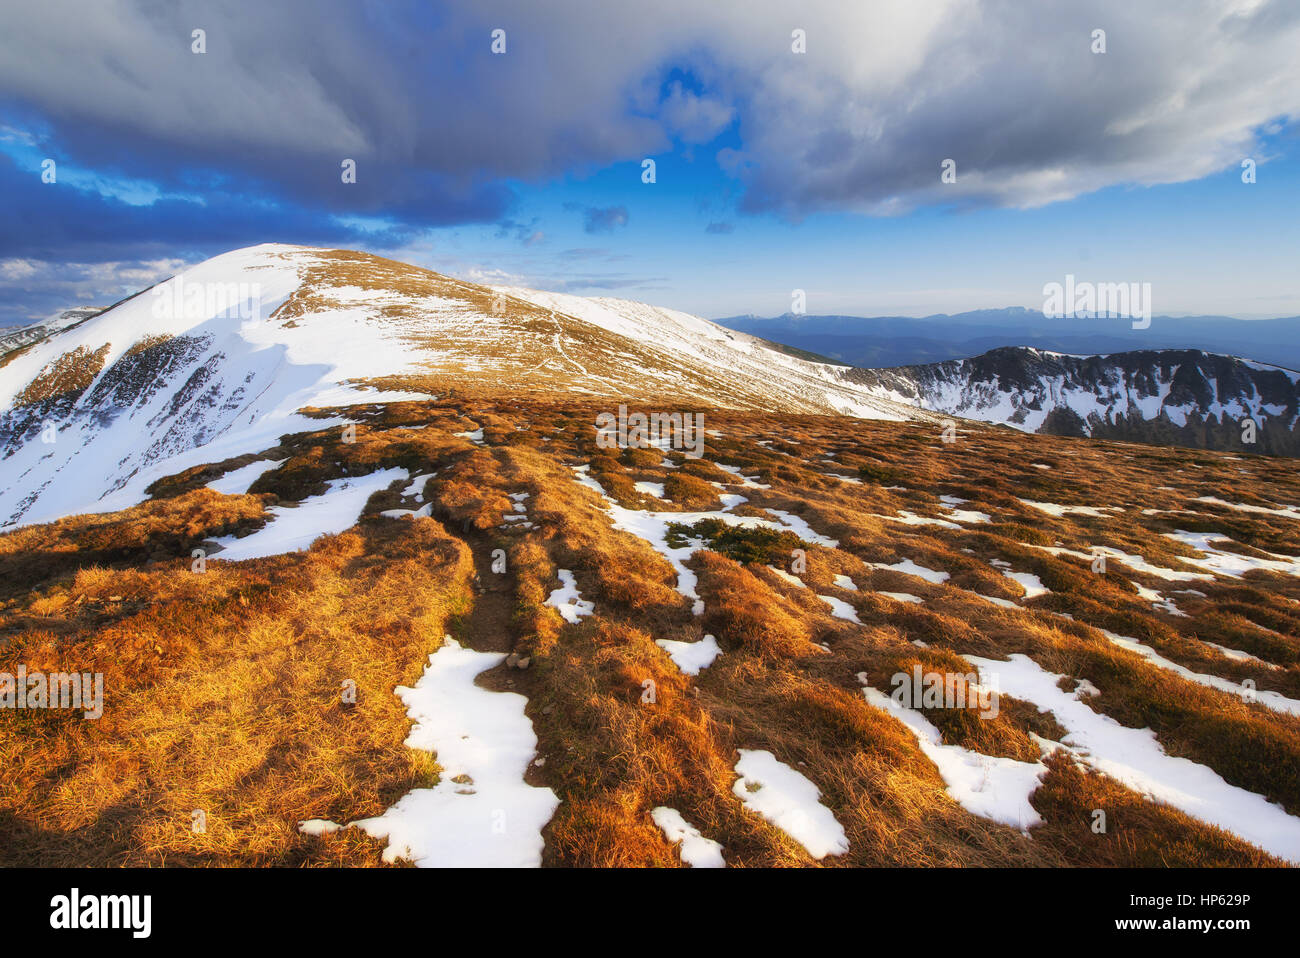 Mysterious winter landscape majestic mountains - Stock Image